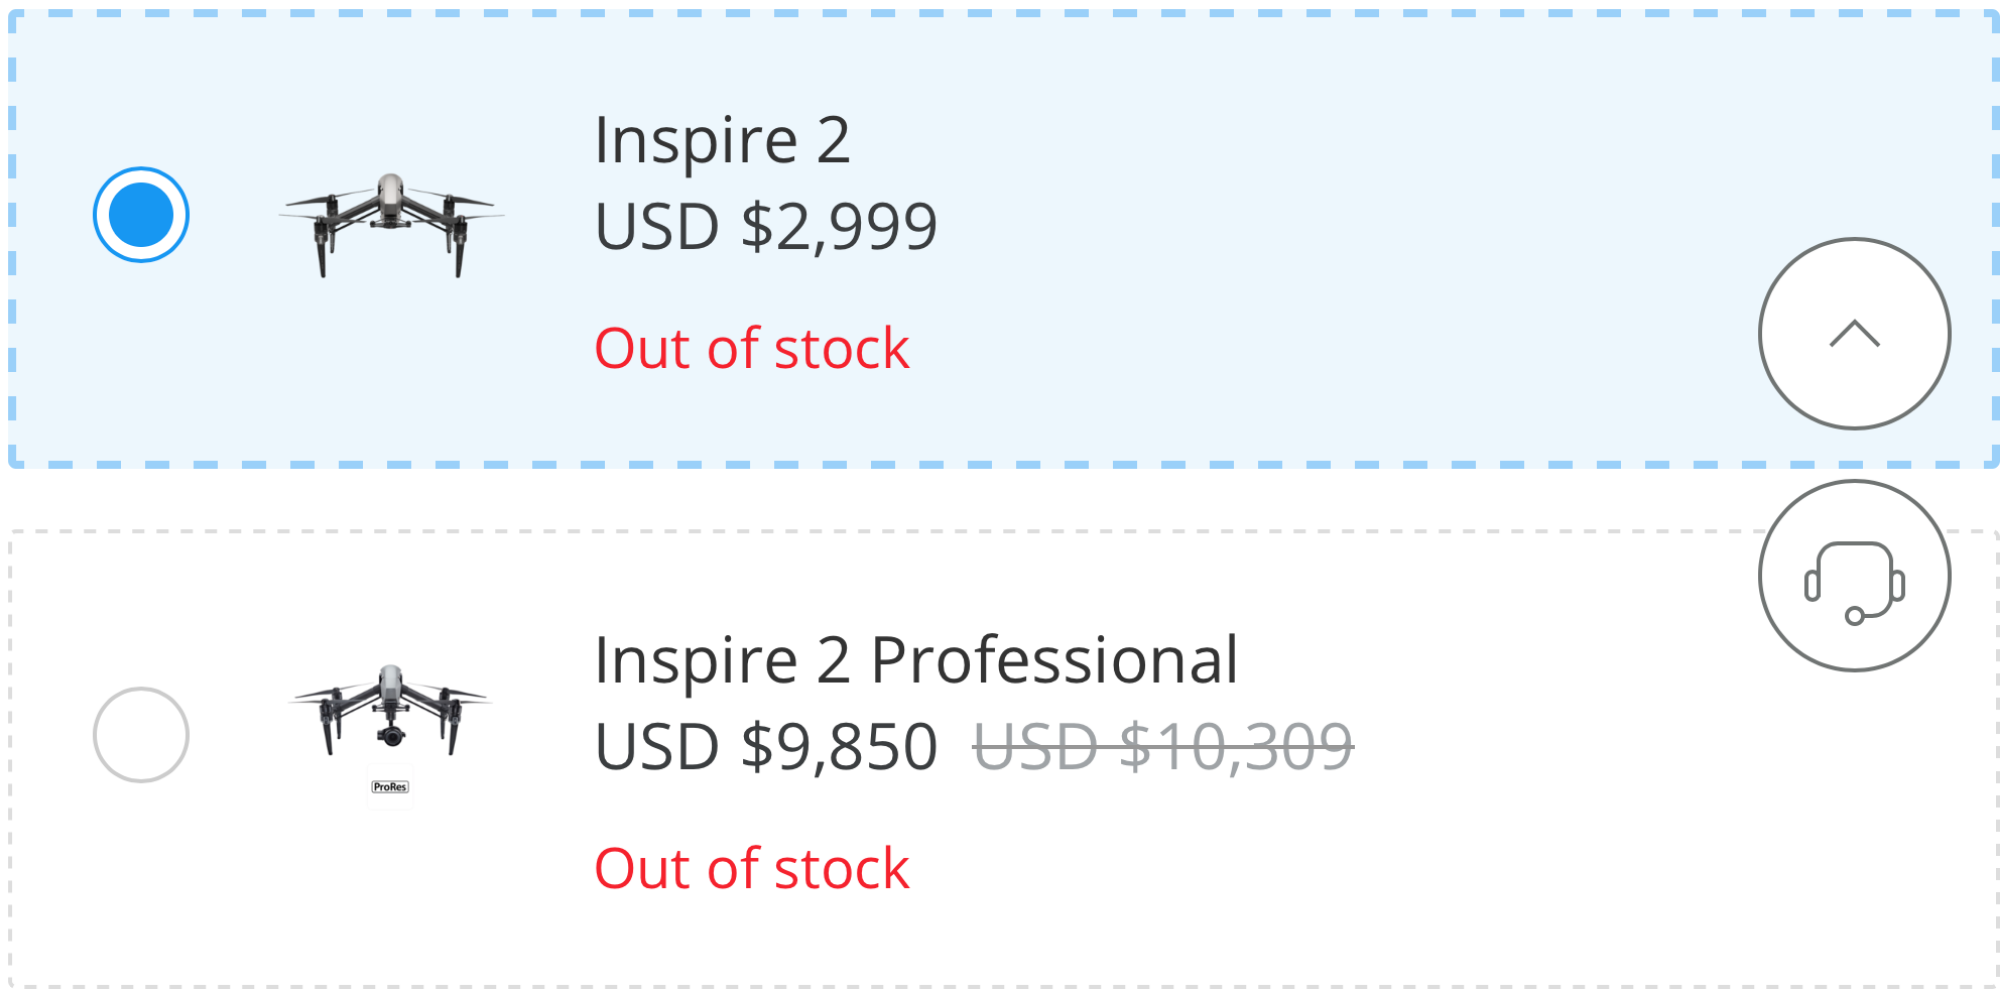 Want to buy a DJI Inspire 2? They're out of stock. - DroneDJ